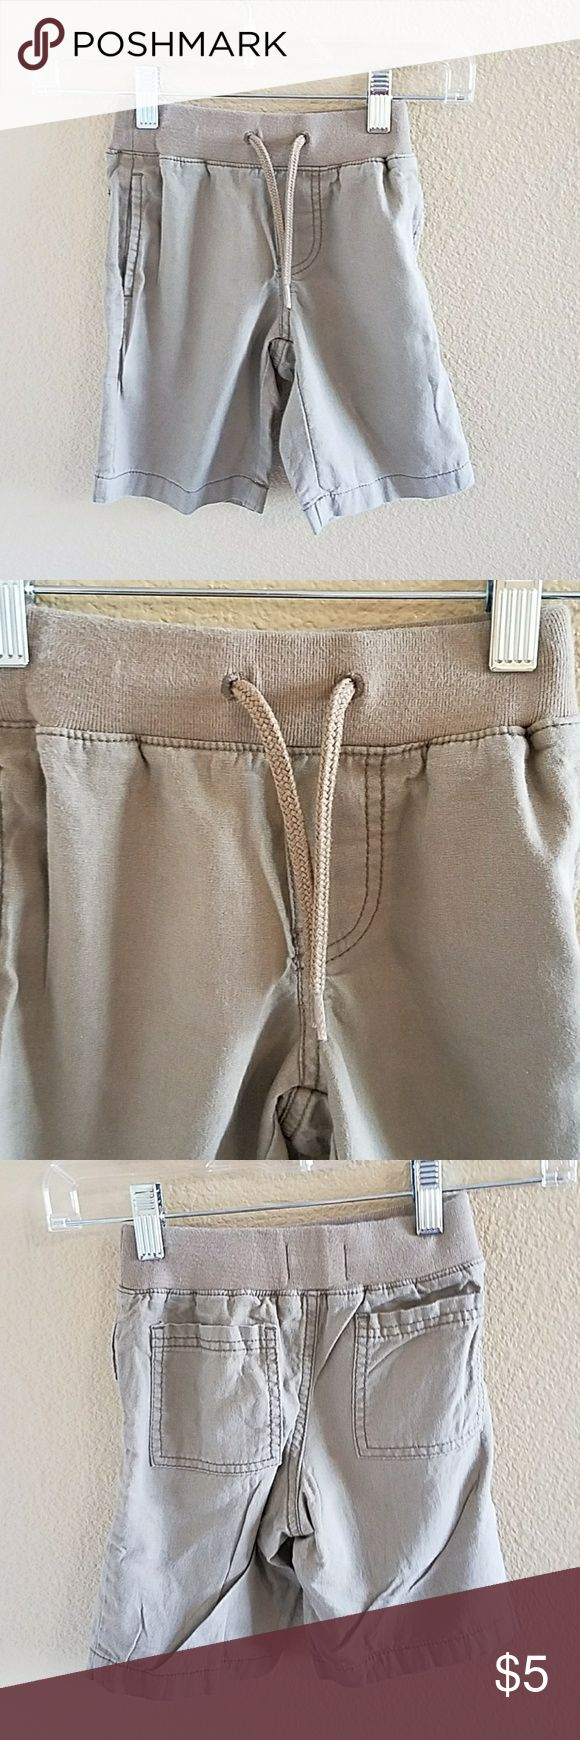 17 Best ideas about Khaki Shorts on Pinterest | Casual pants ...